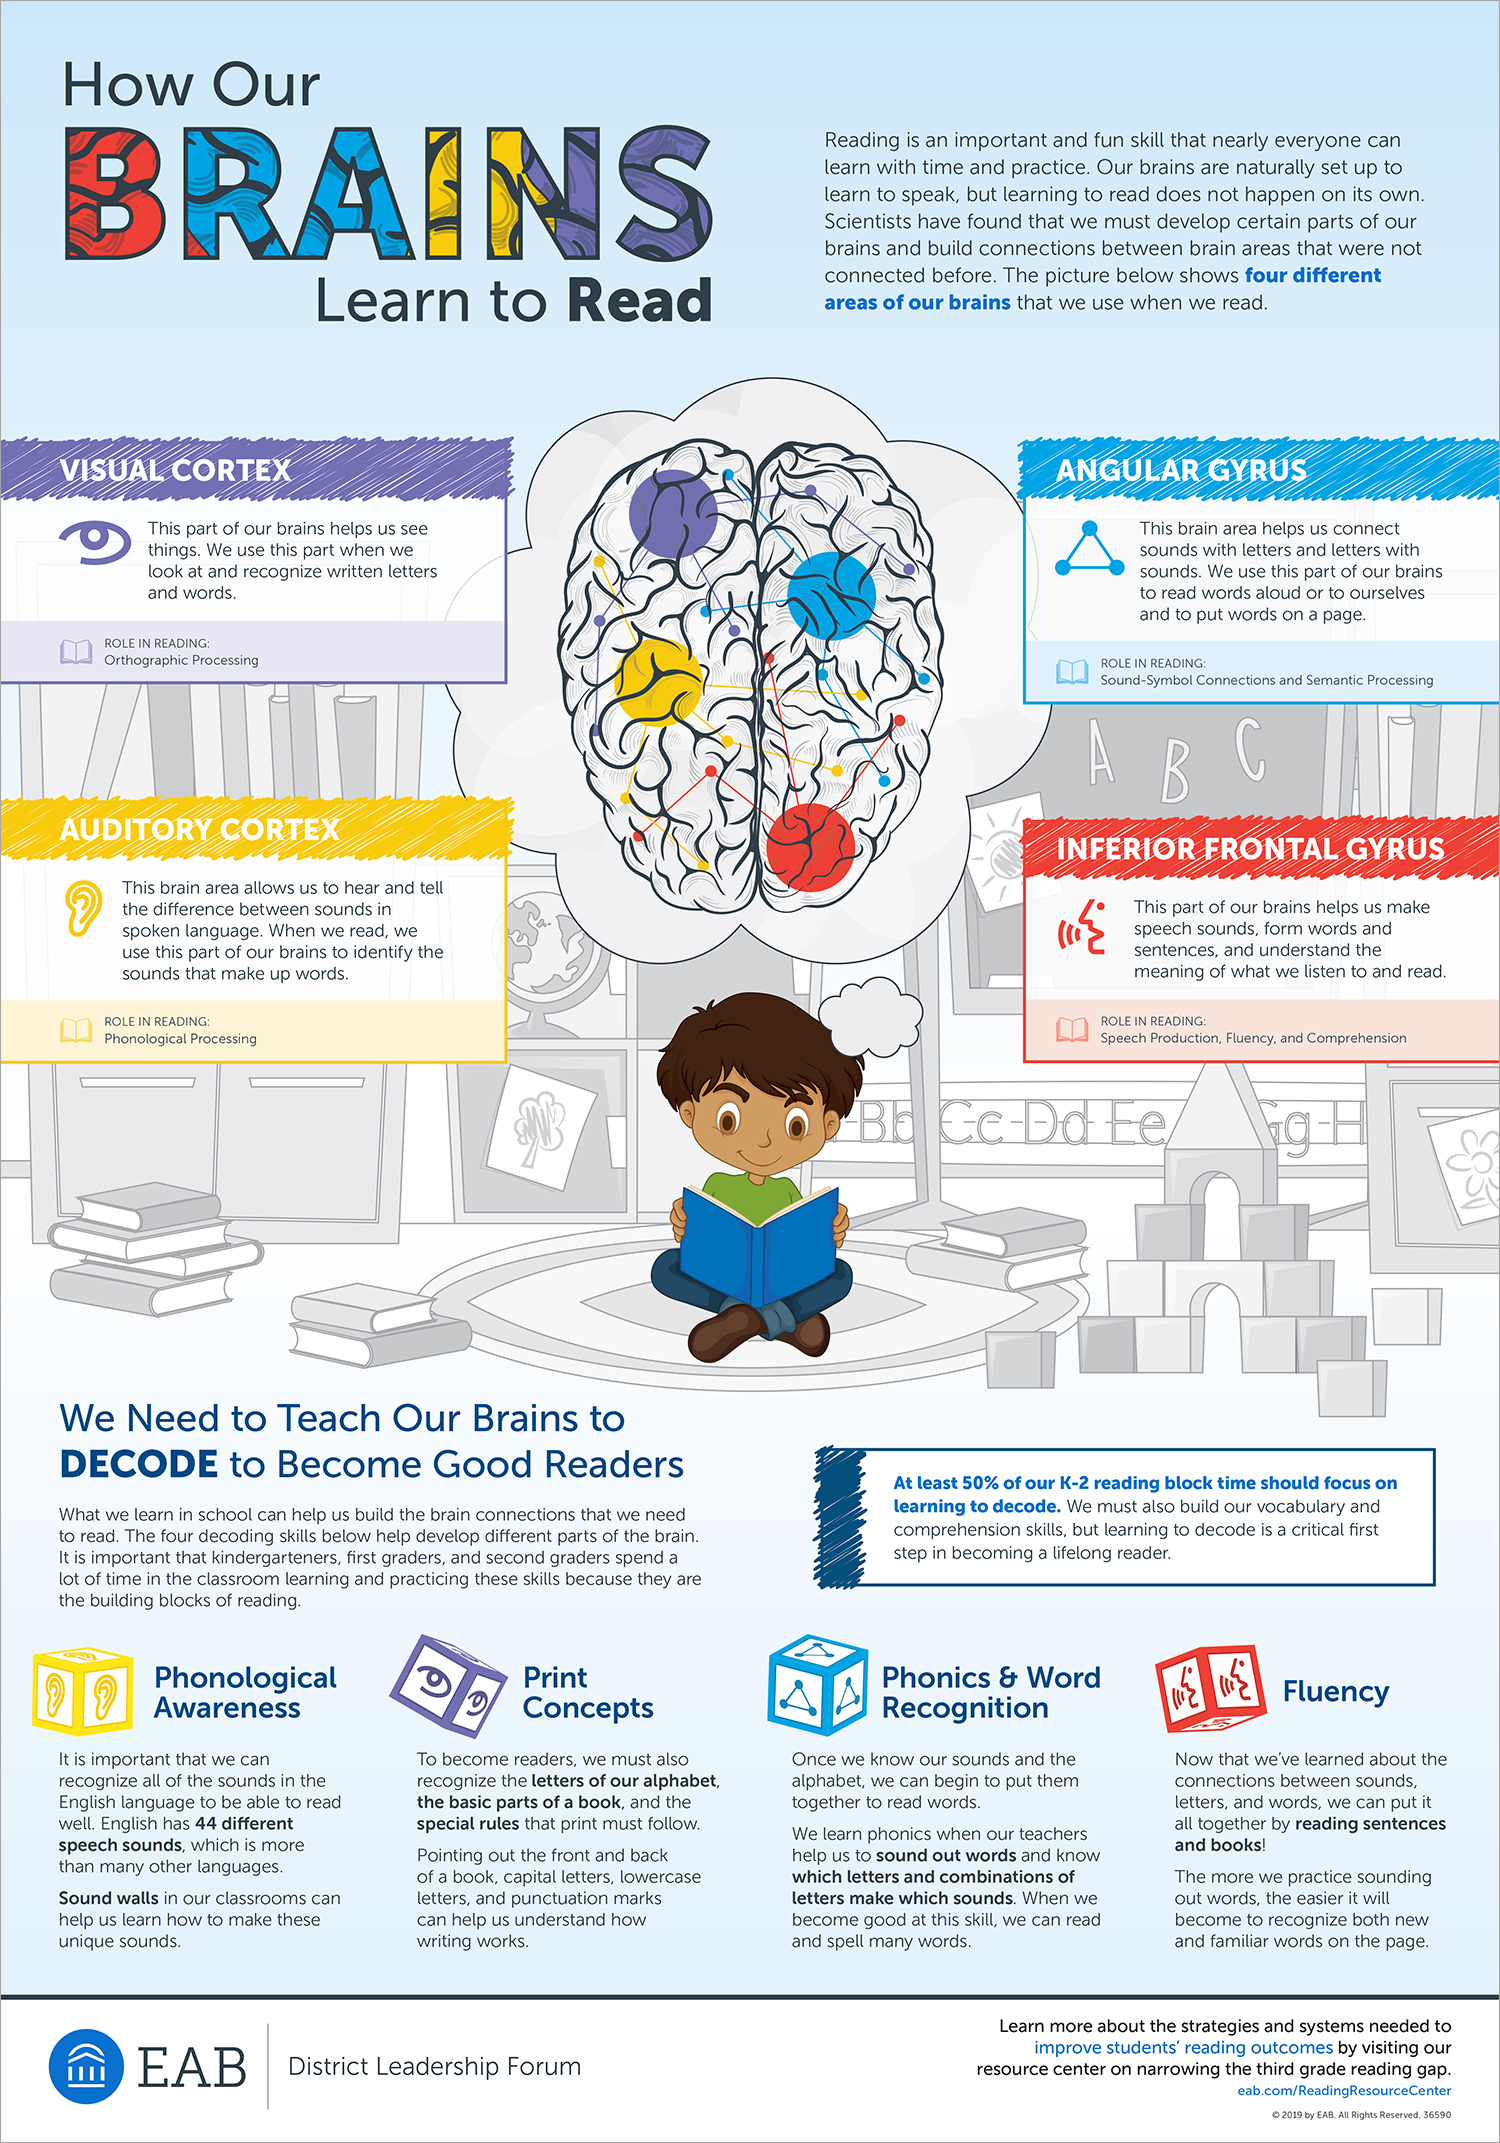 Why Learning to Decode Comes Before Learning to Read - Infographic